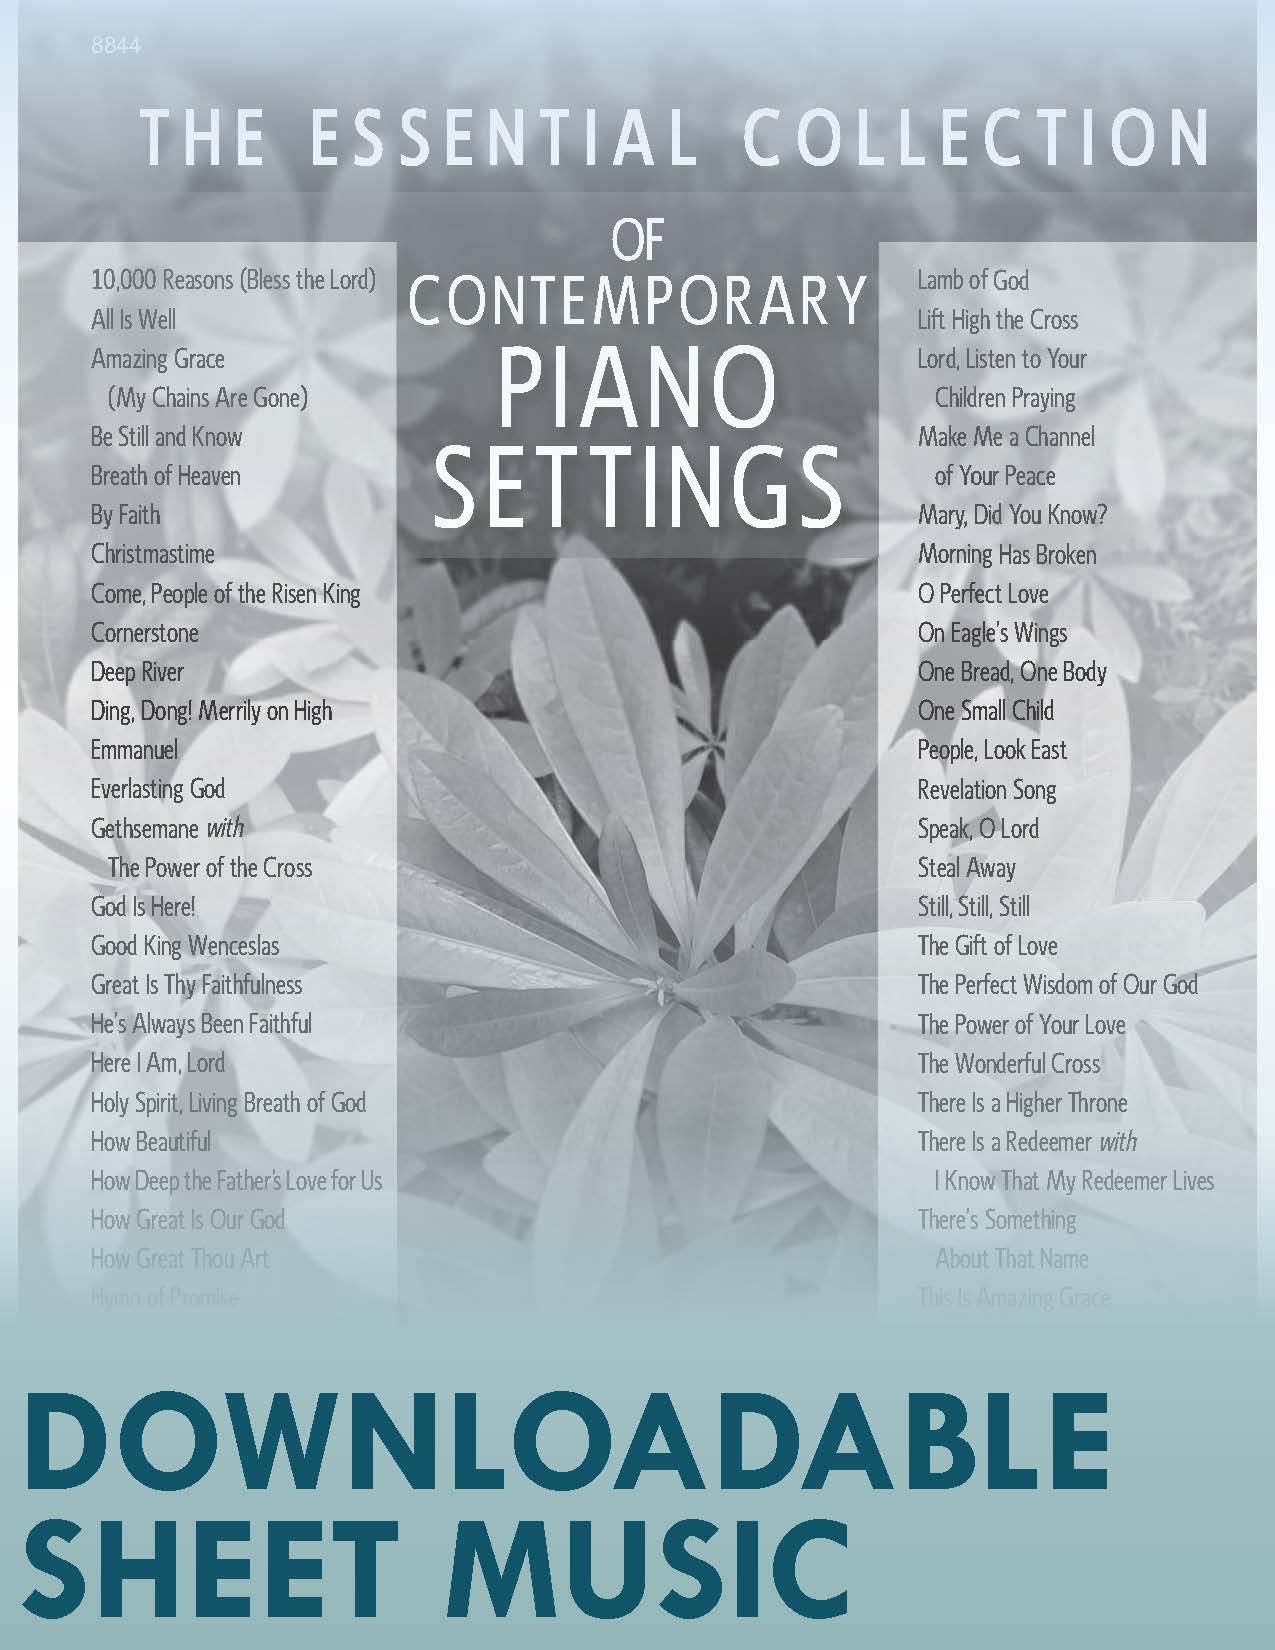 The Essential Collection of Contemporary Piano Settings (Digital Download)